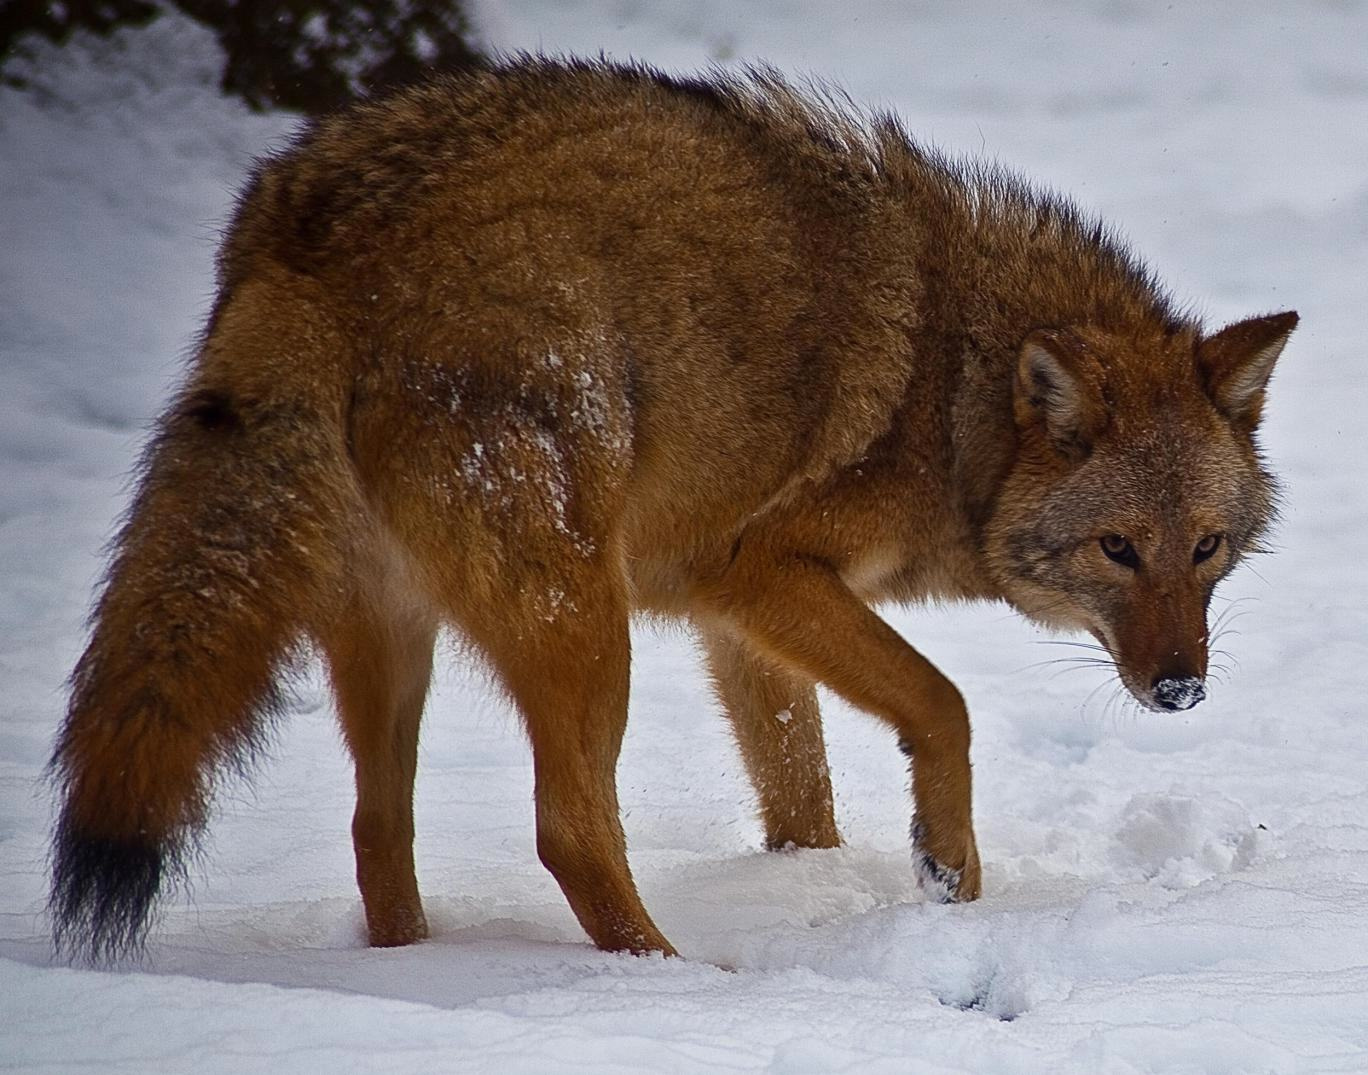 UNILAD Wikimedia54481 Meet The Coywolf, A Coyote Wolf Hybrid Whose Population Is Rapidly Soaring